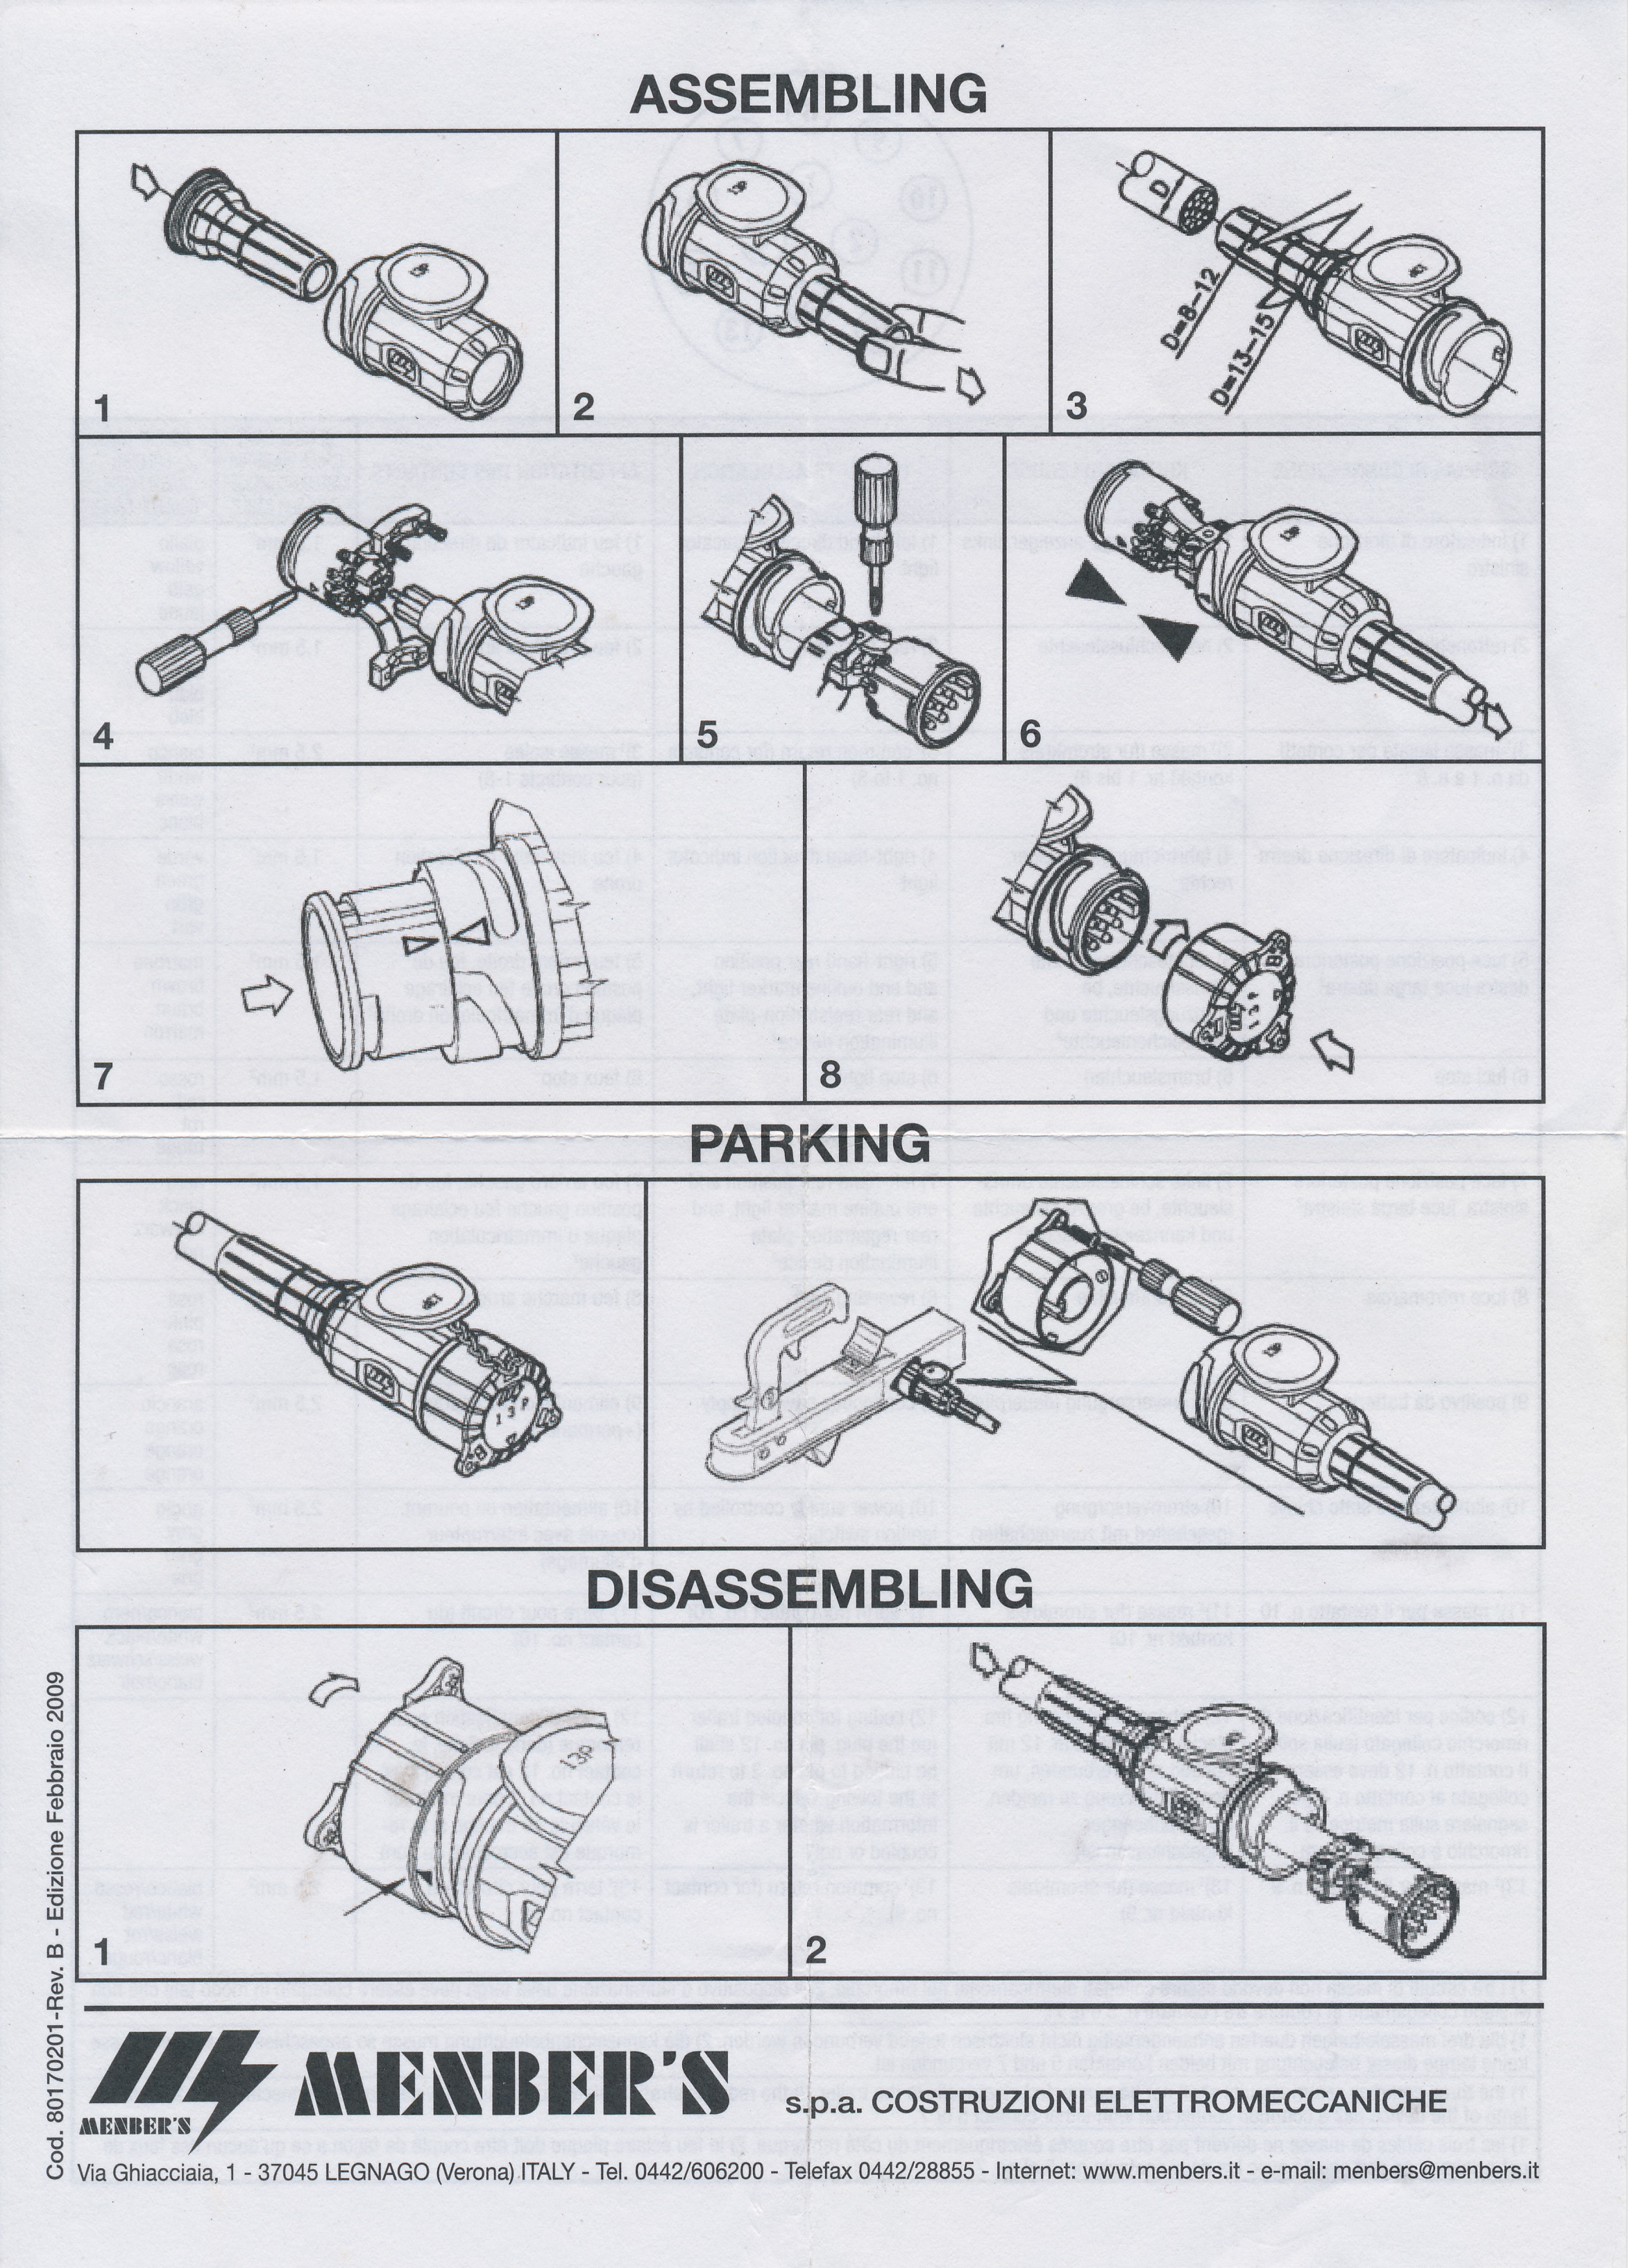 13 pin plug assembly instructions page 1 the 13 pin plug puzzle caravan chronicles euro 13 pin plug wiring diagram at gsmx.co